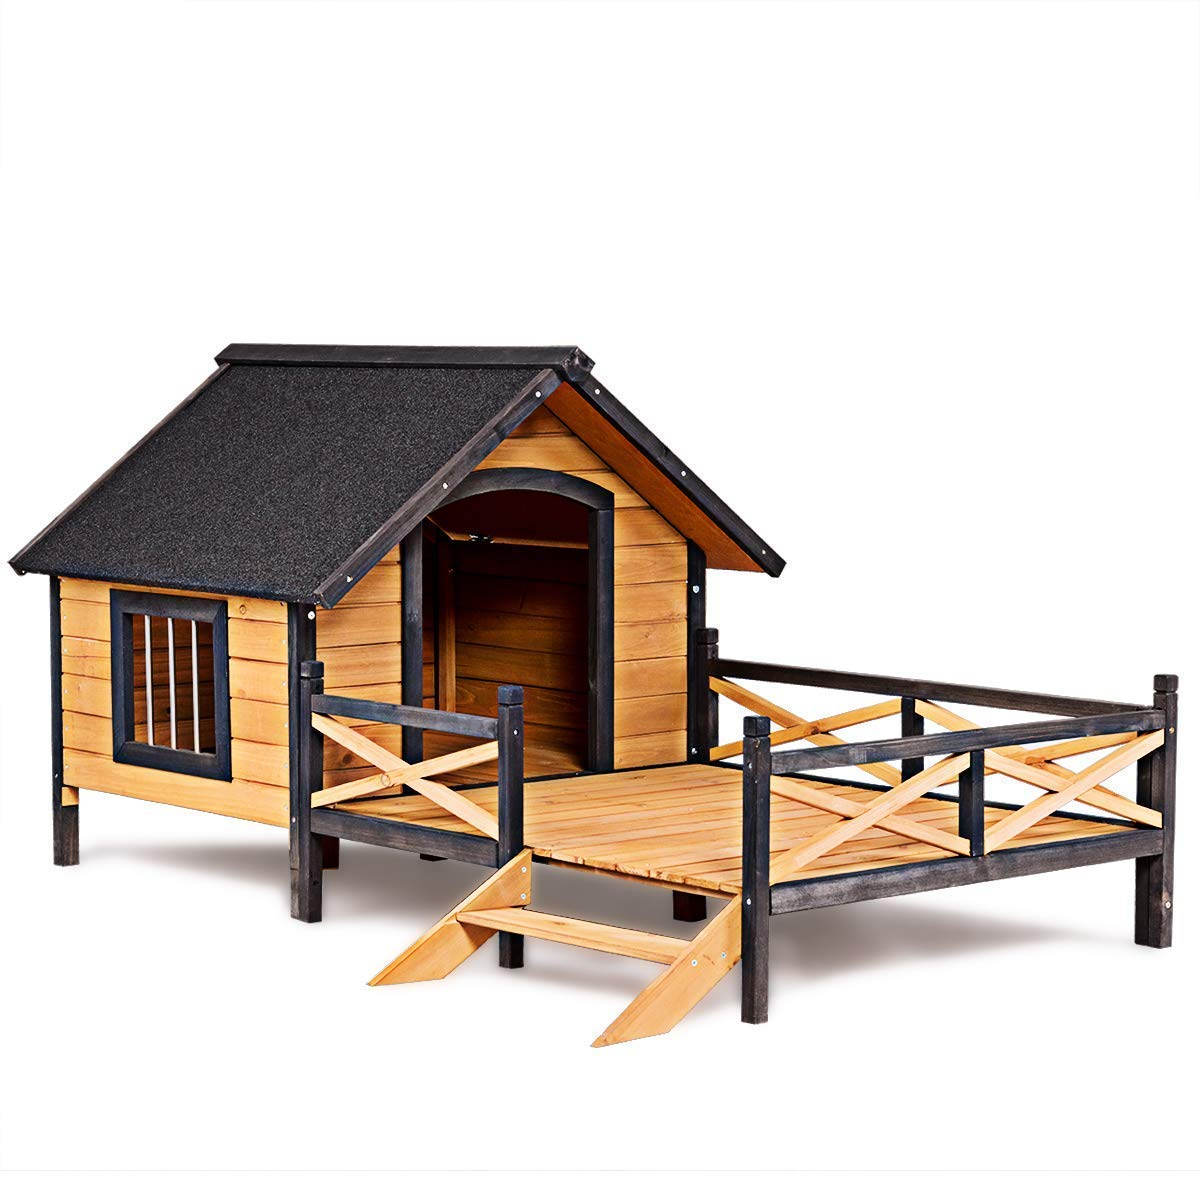 Tangkula Wood Dog House, Cabin Style Large Elevated Weather Waterproof Outdoor Pet Dog House, Lodge with Porch, Spacious Deck for Sunny Nap, Wooden Pet Dog House